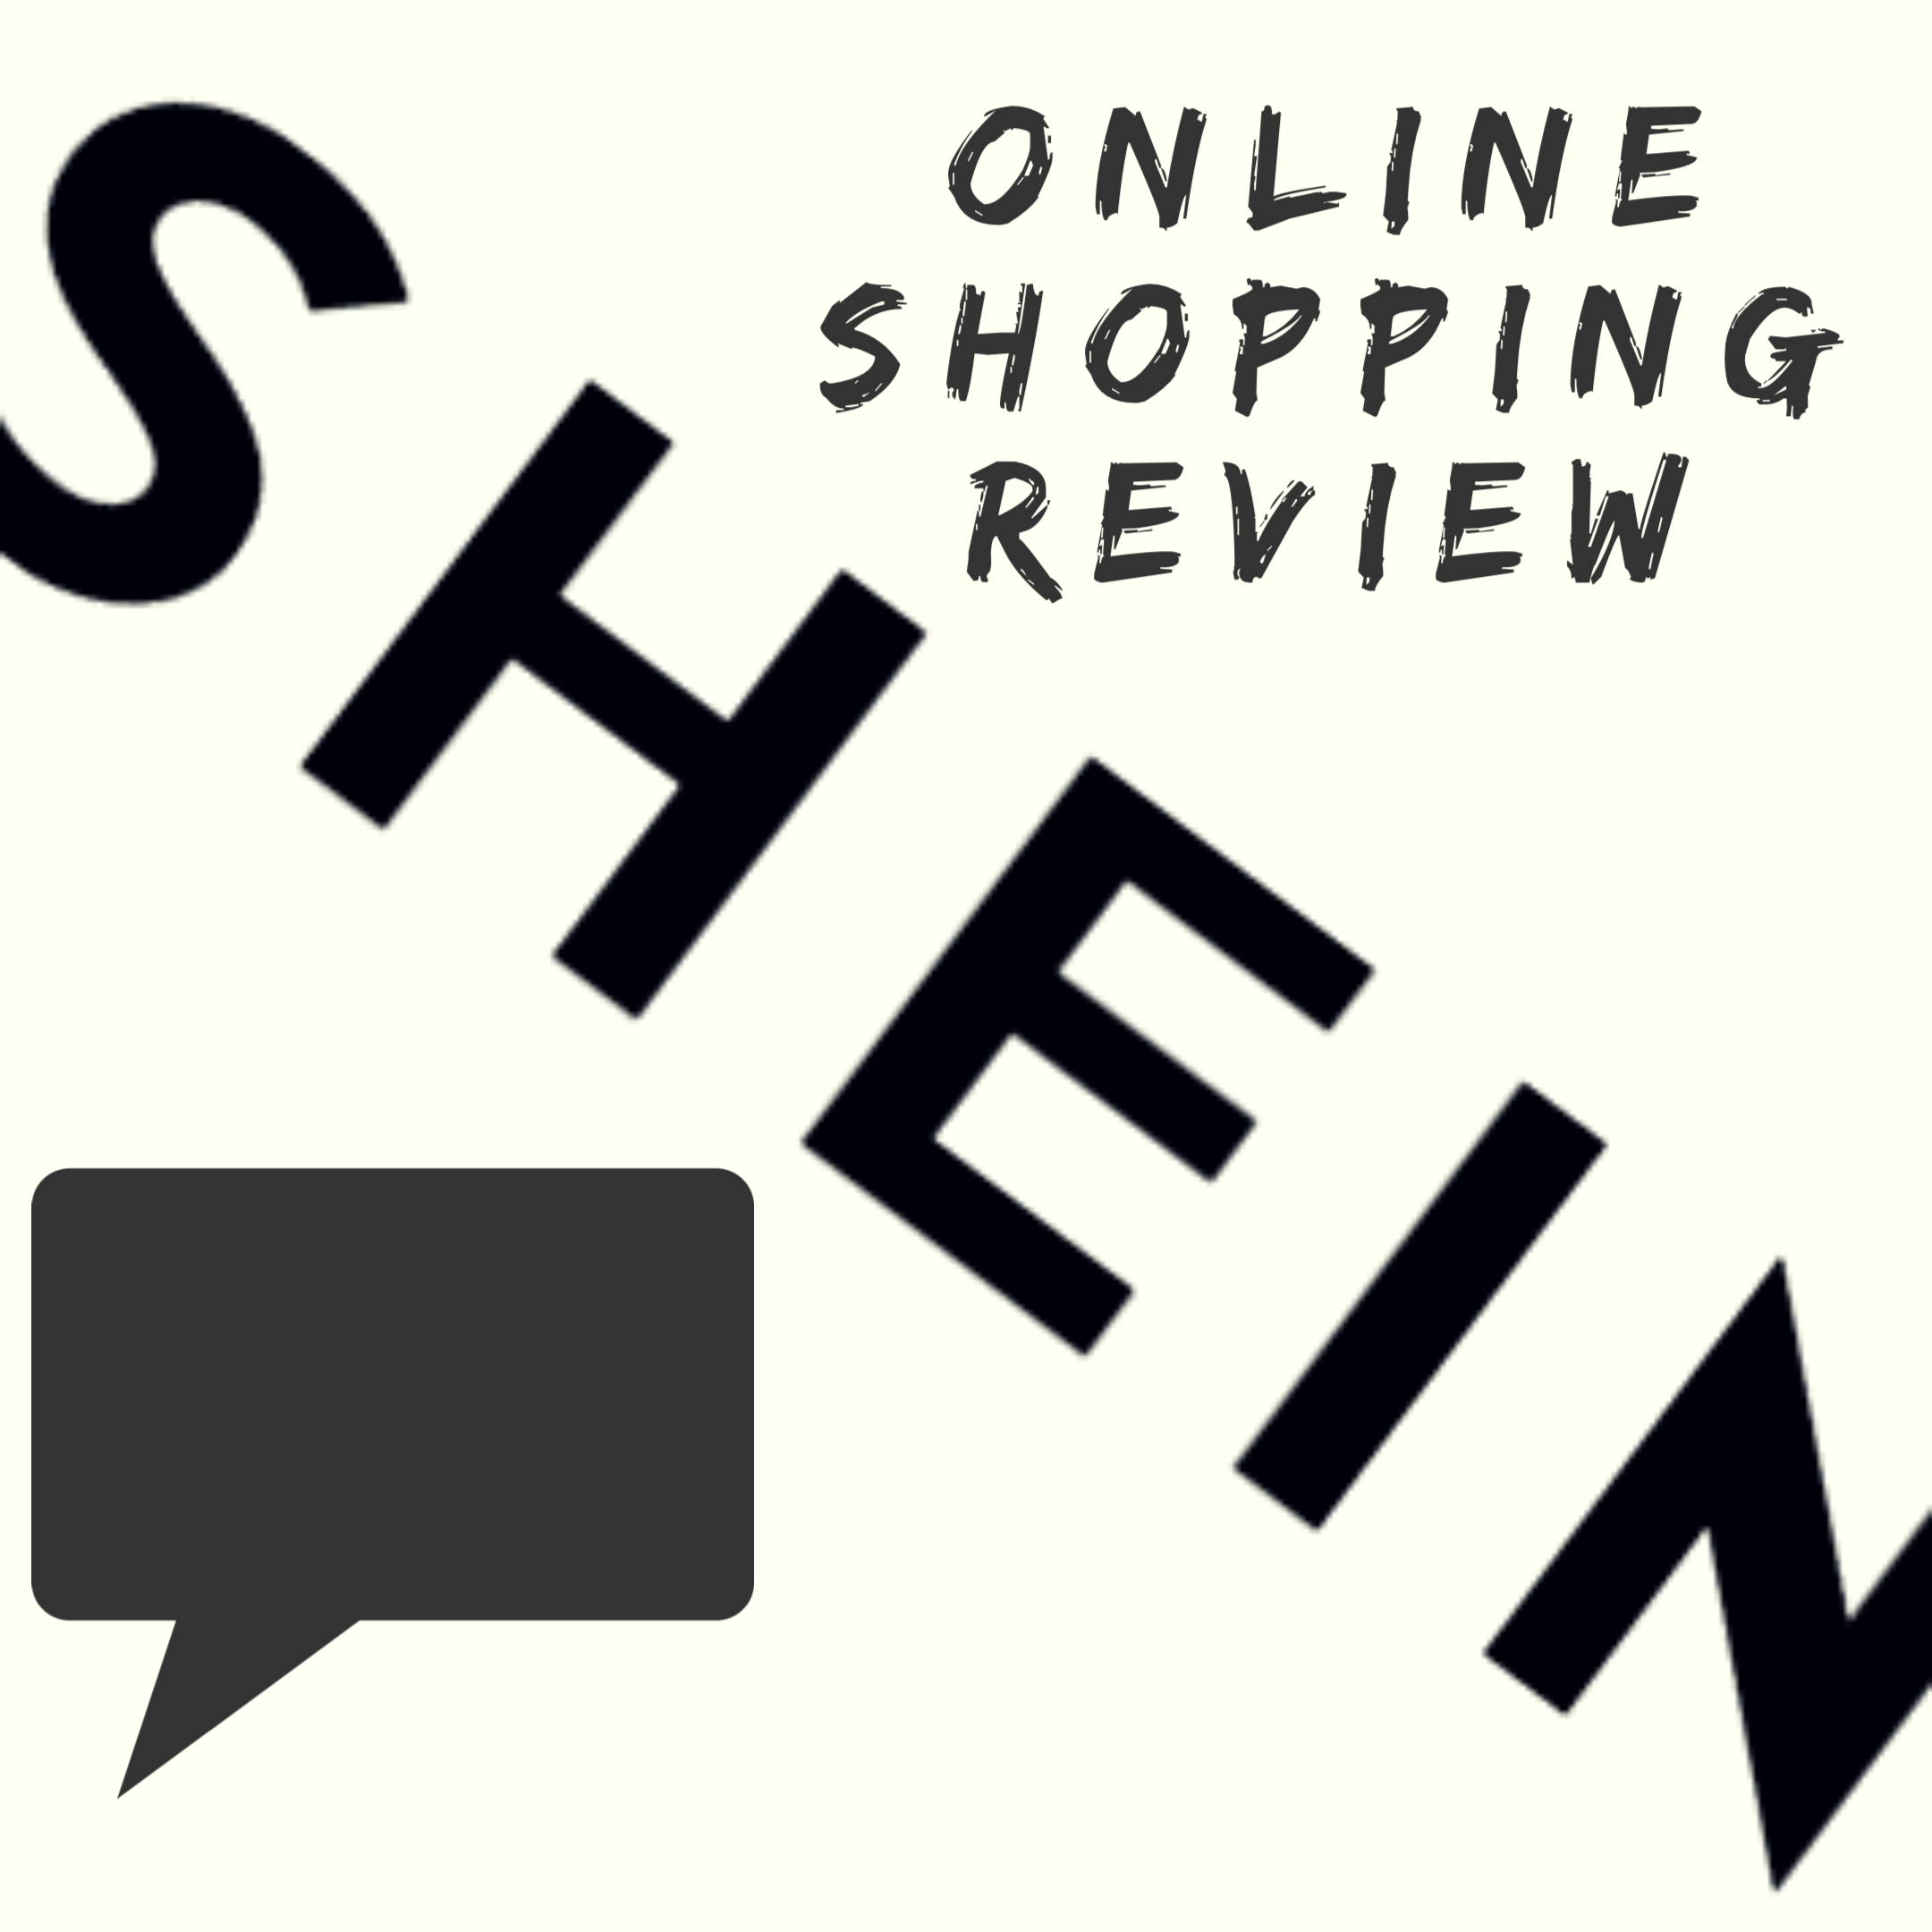 Shein Online Shopping Review